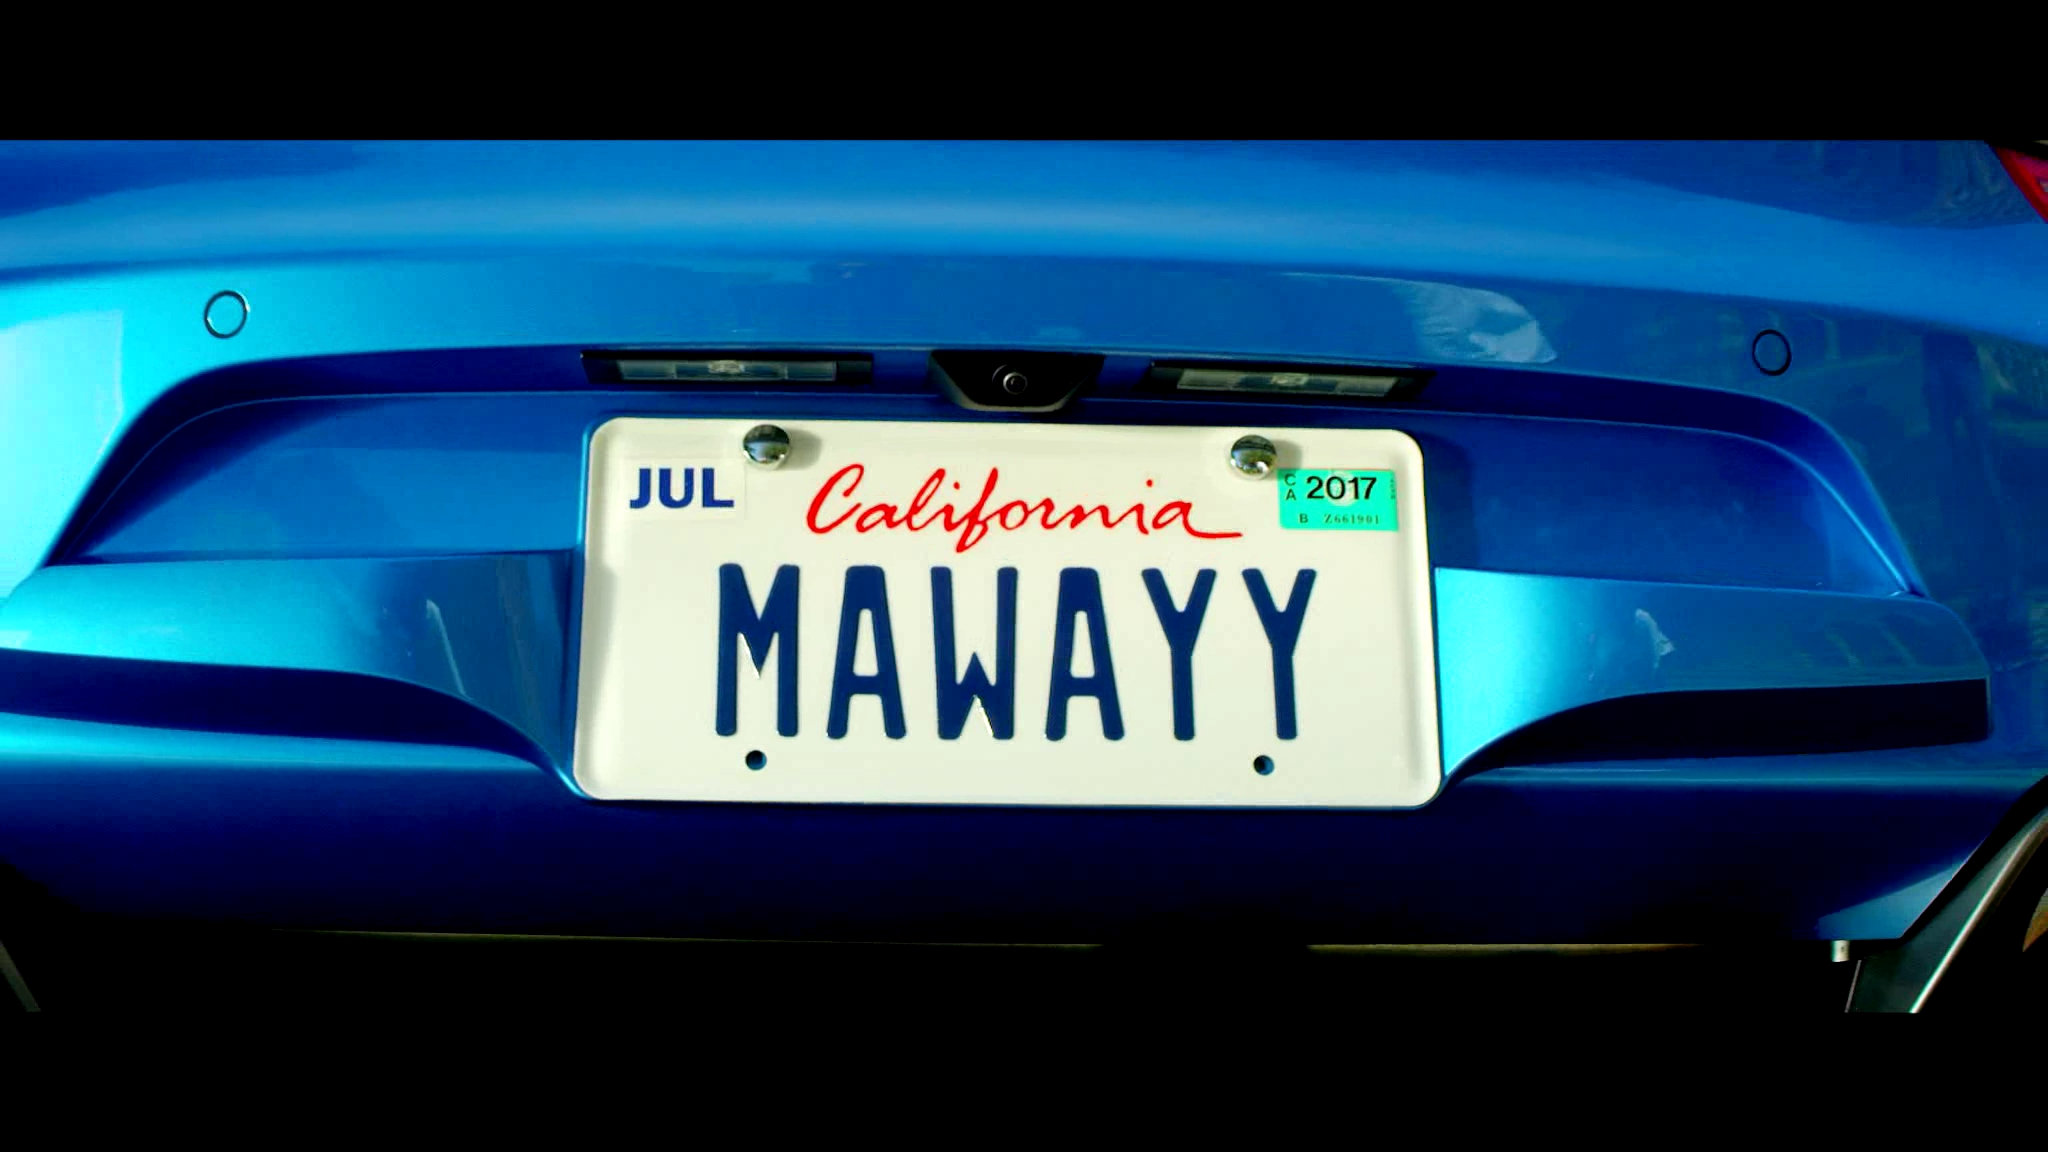 MaWayy License Plate